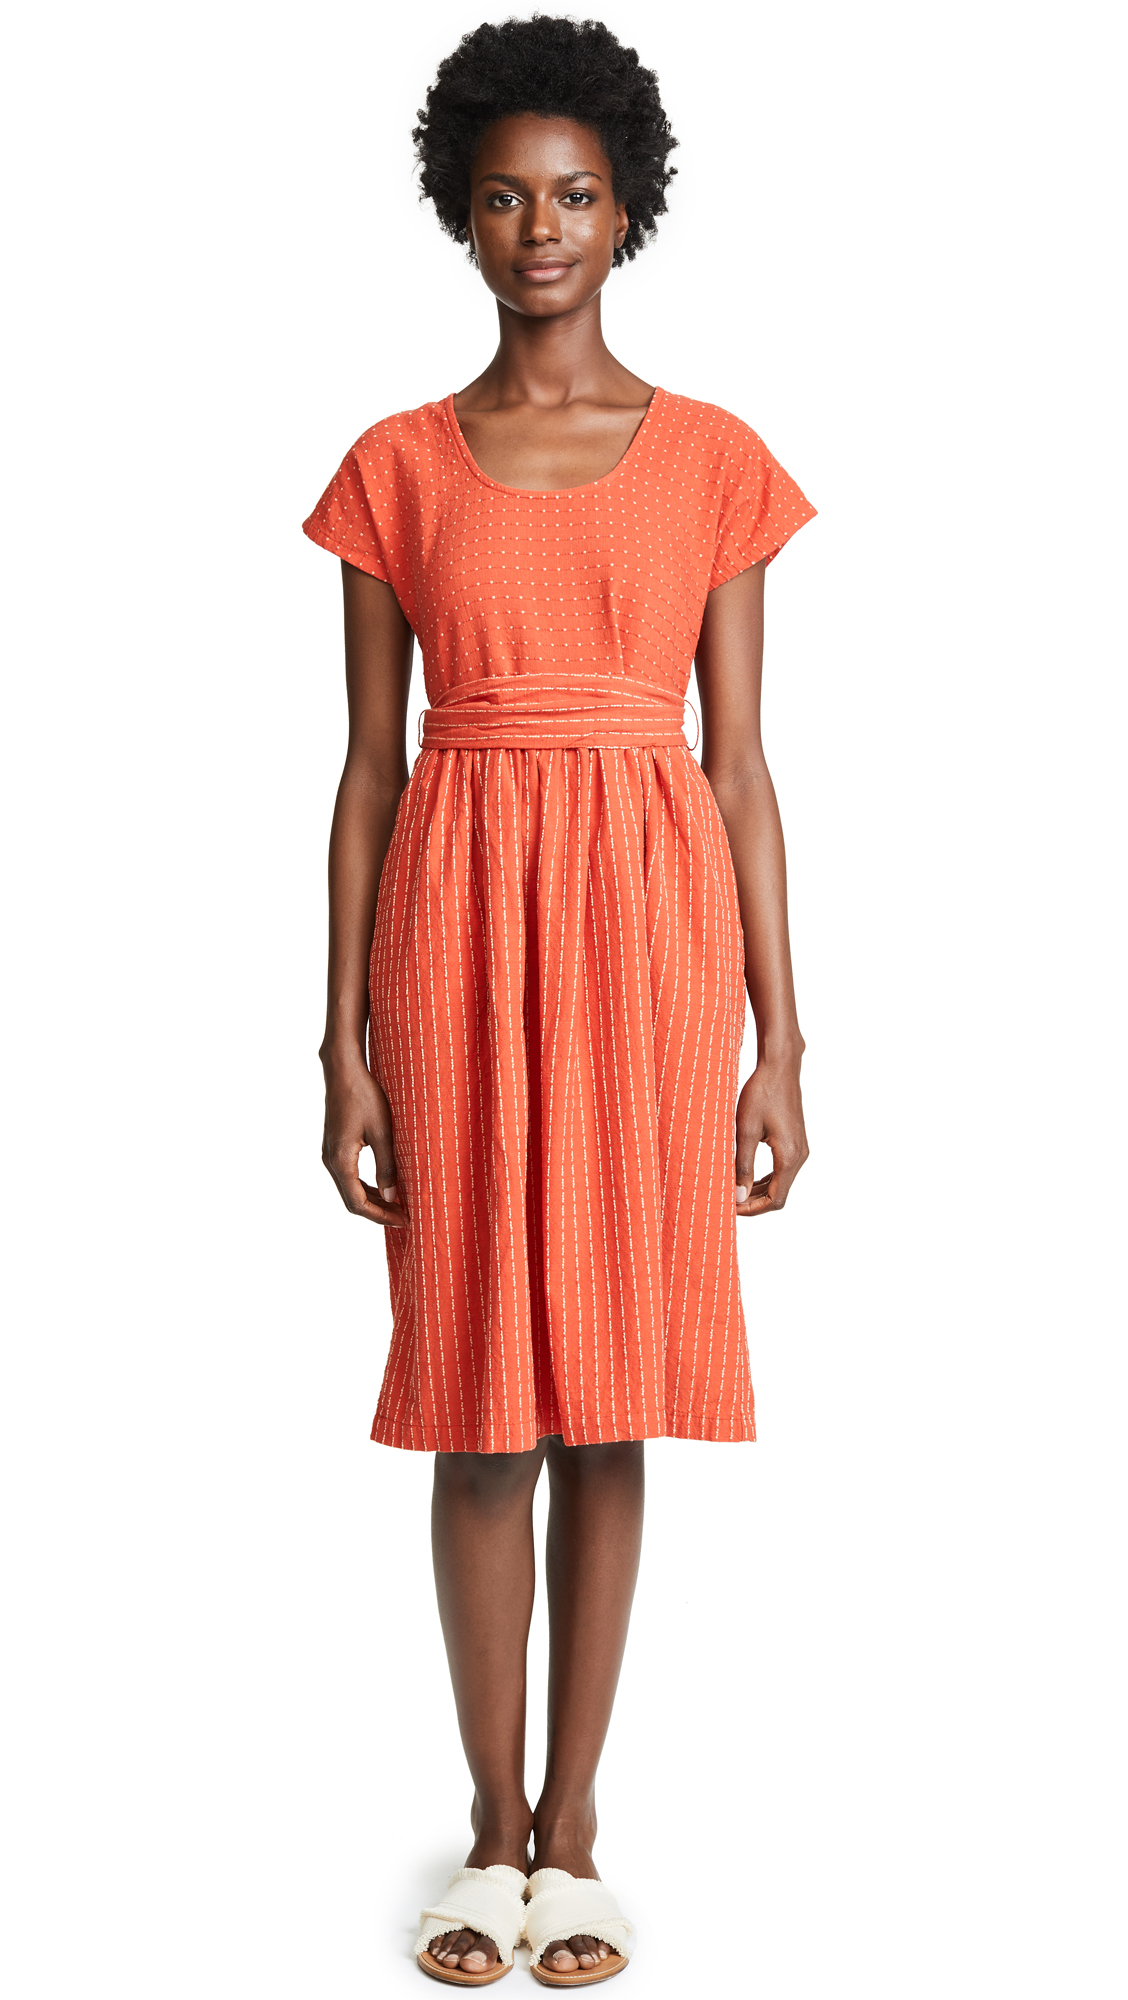 ace & jig Luna Dress